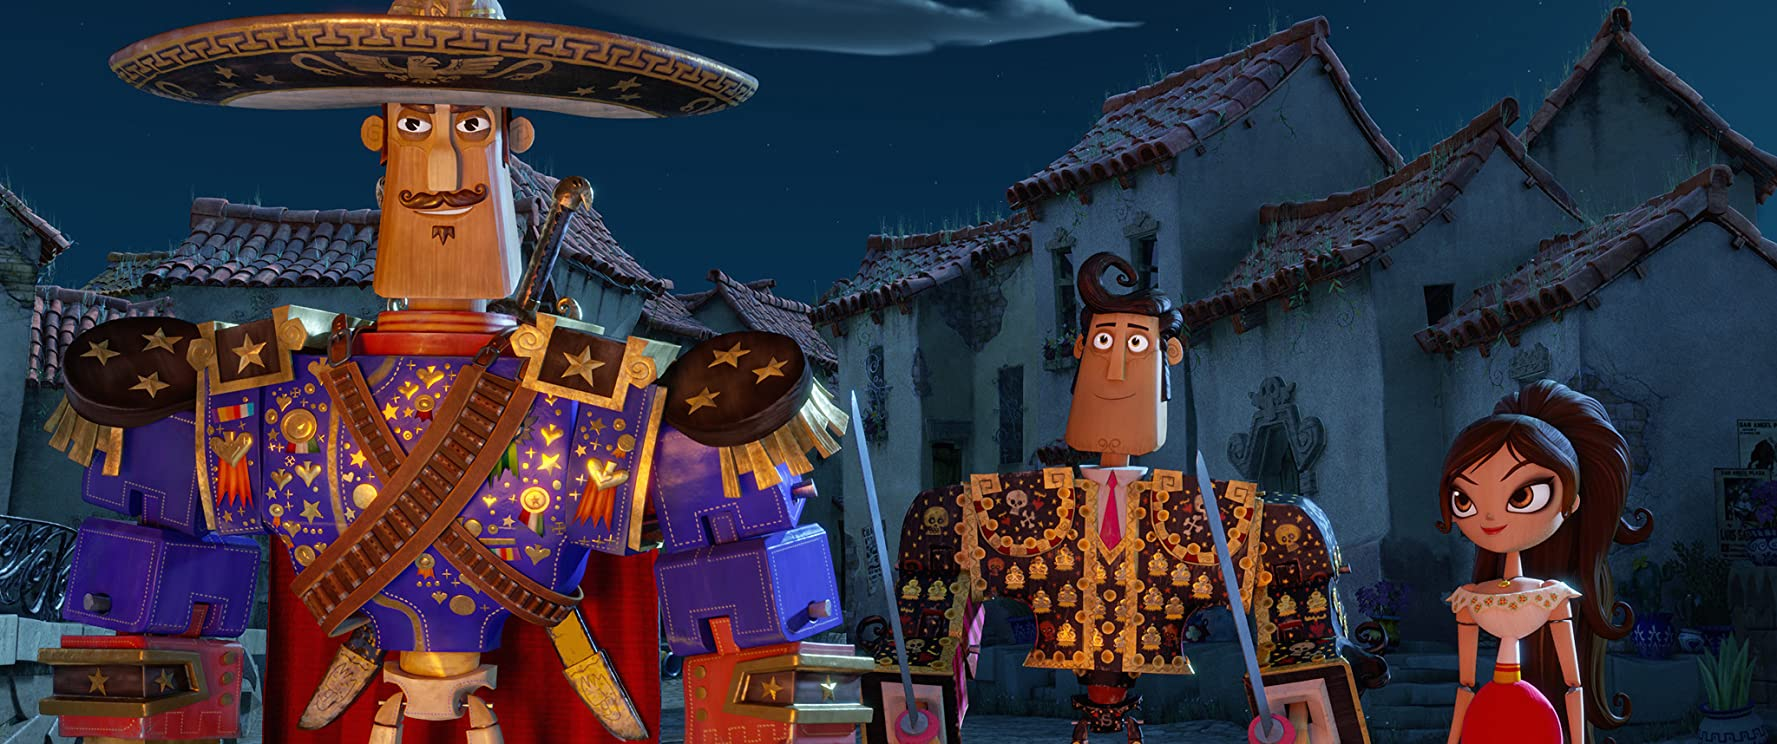 Diego Luna, Zoe Saldana, and Channing Tatum in The Book of Life (2014)